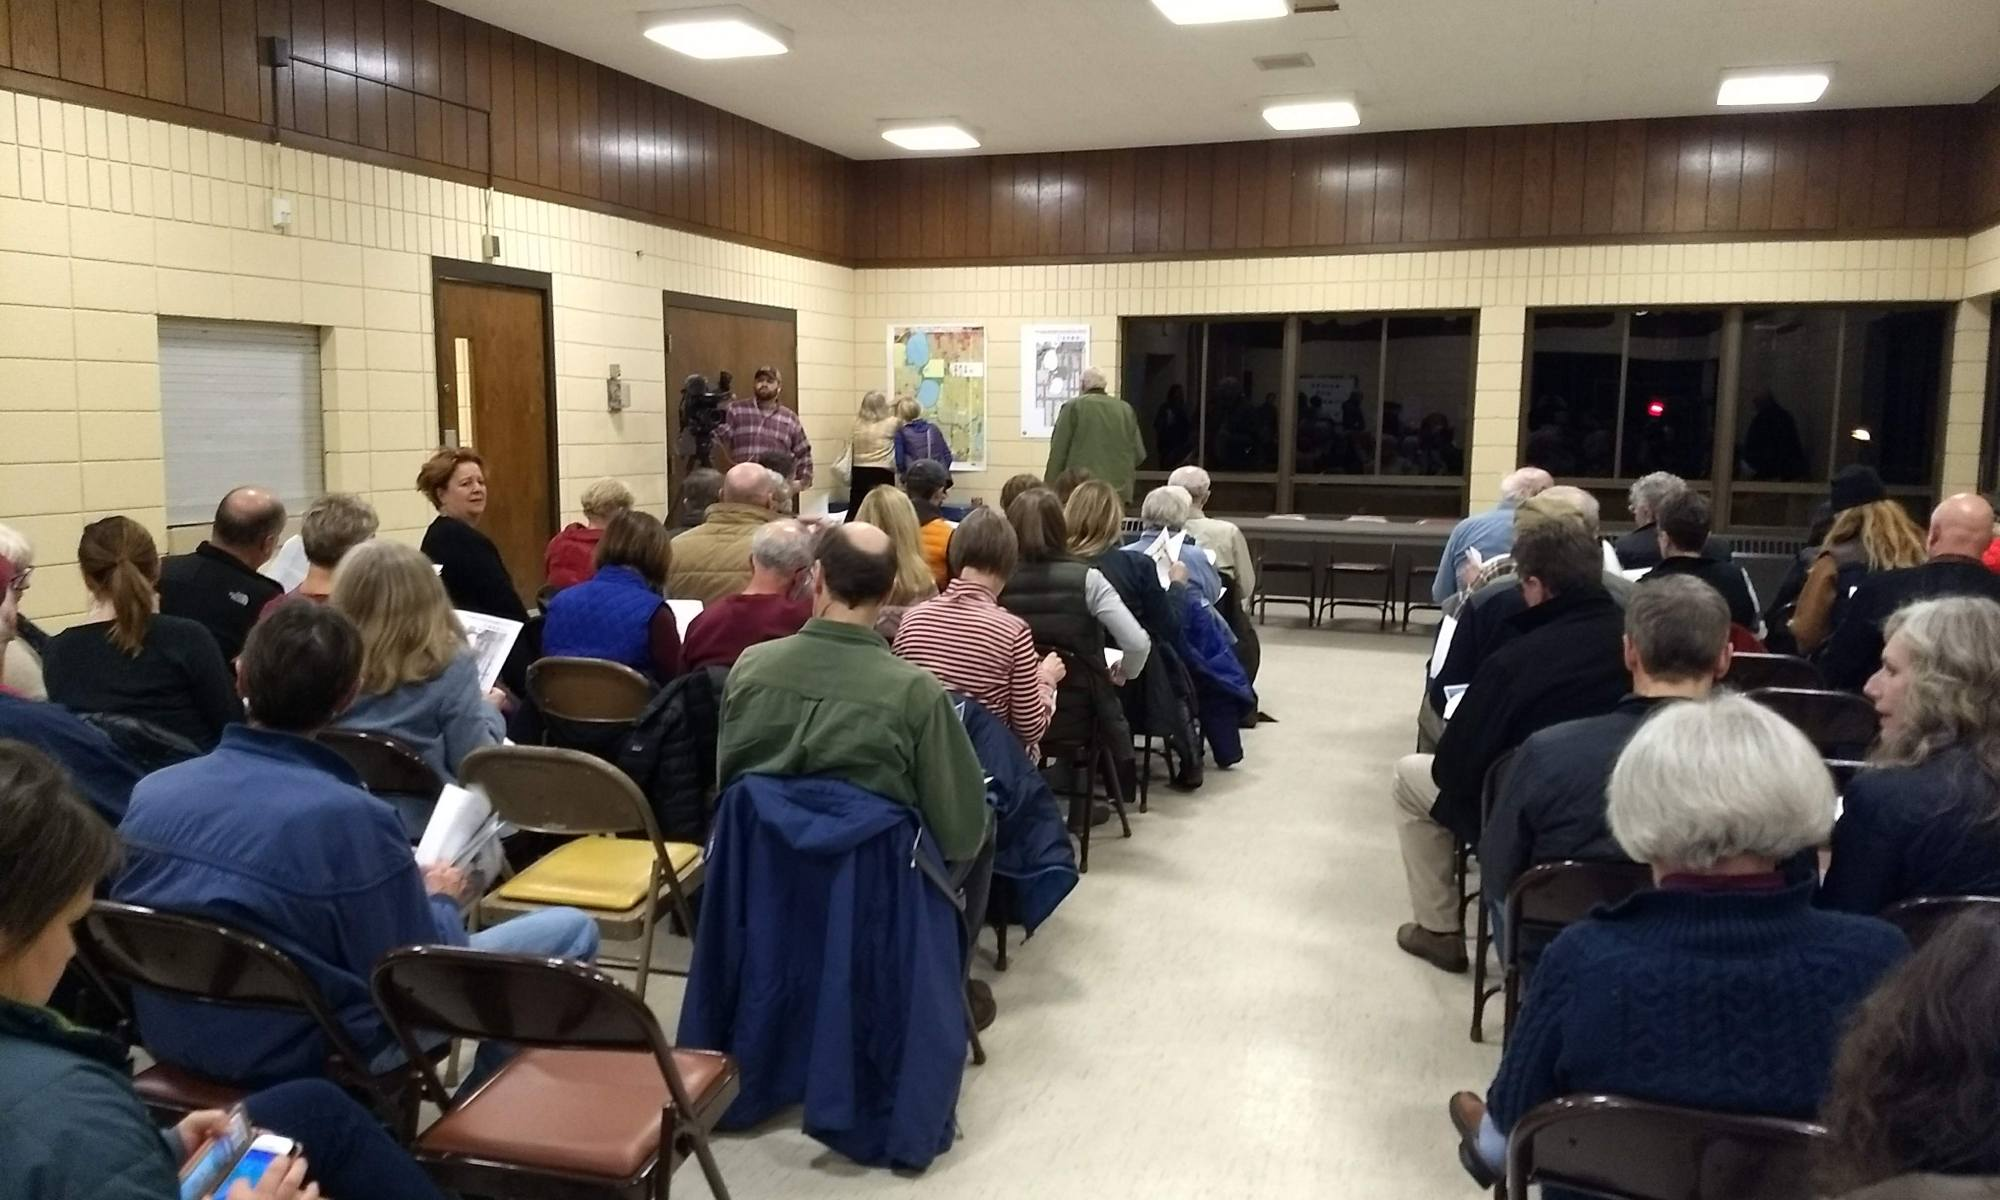 Crowd shot of older residents at Linden Hills comprehensive plan meeting featuring Council Member Linea Palmisano.